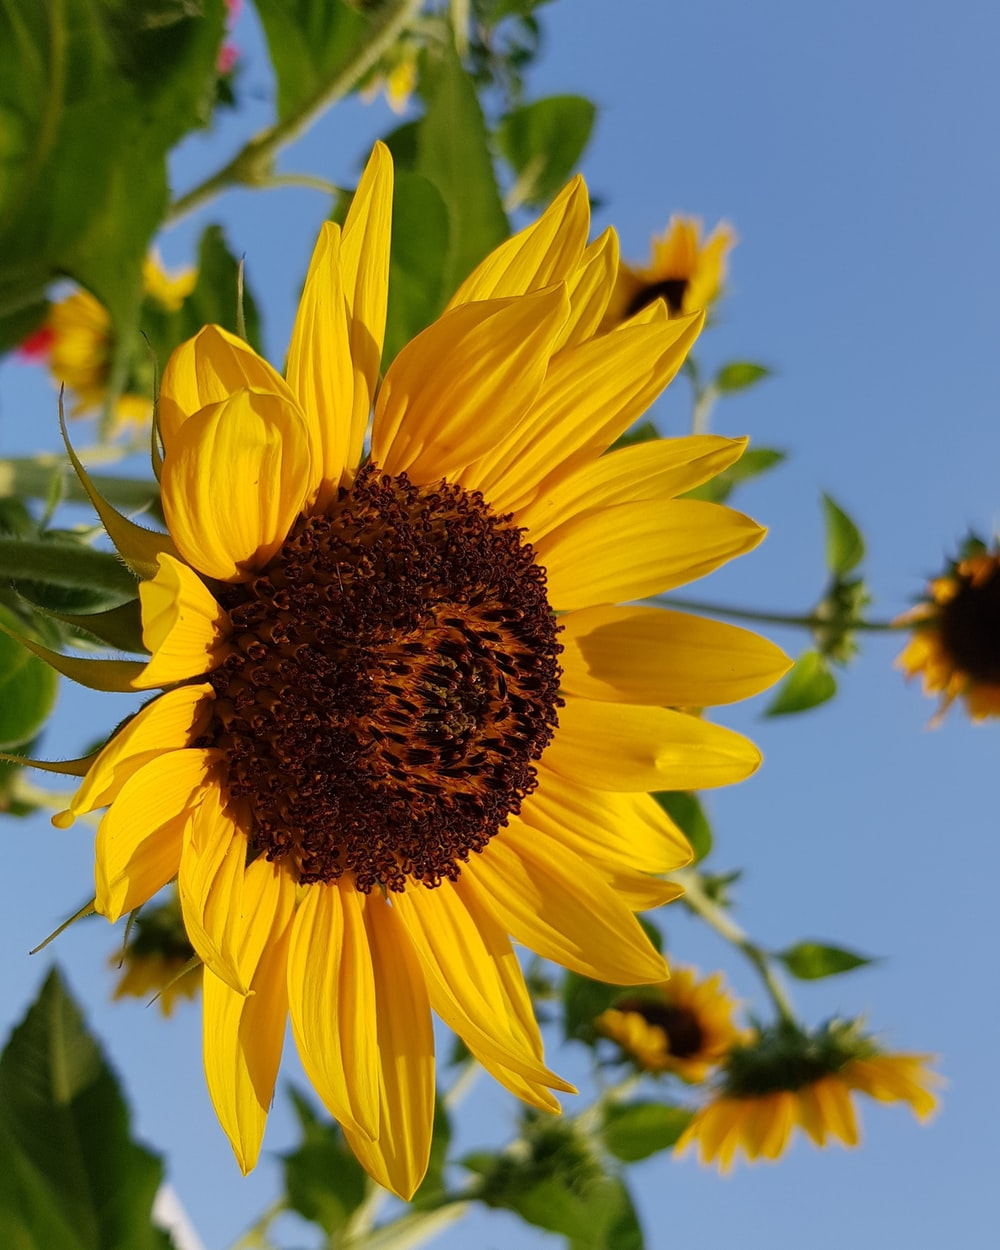 close-up photography of sunflower during daytime